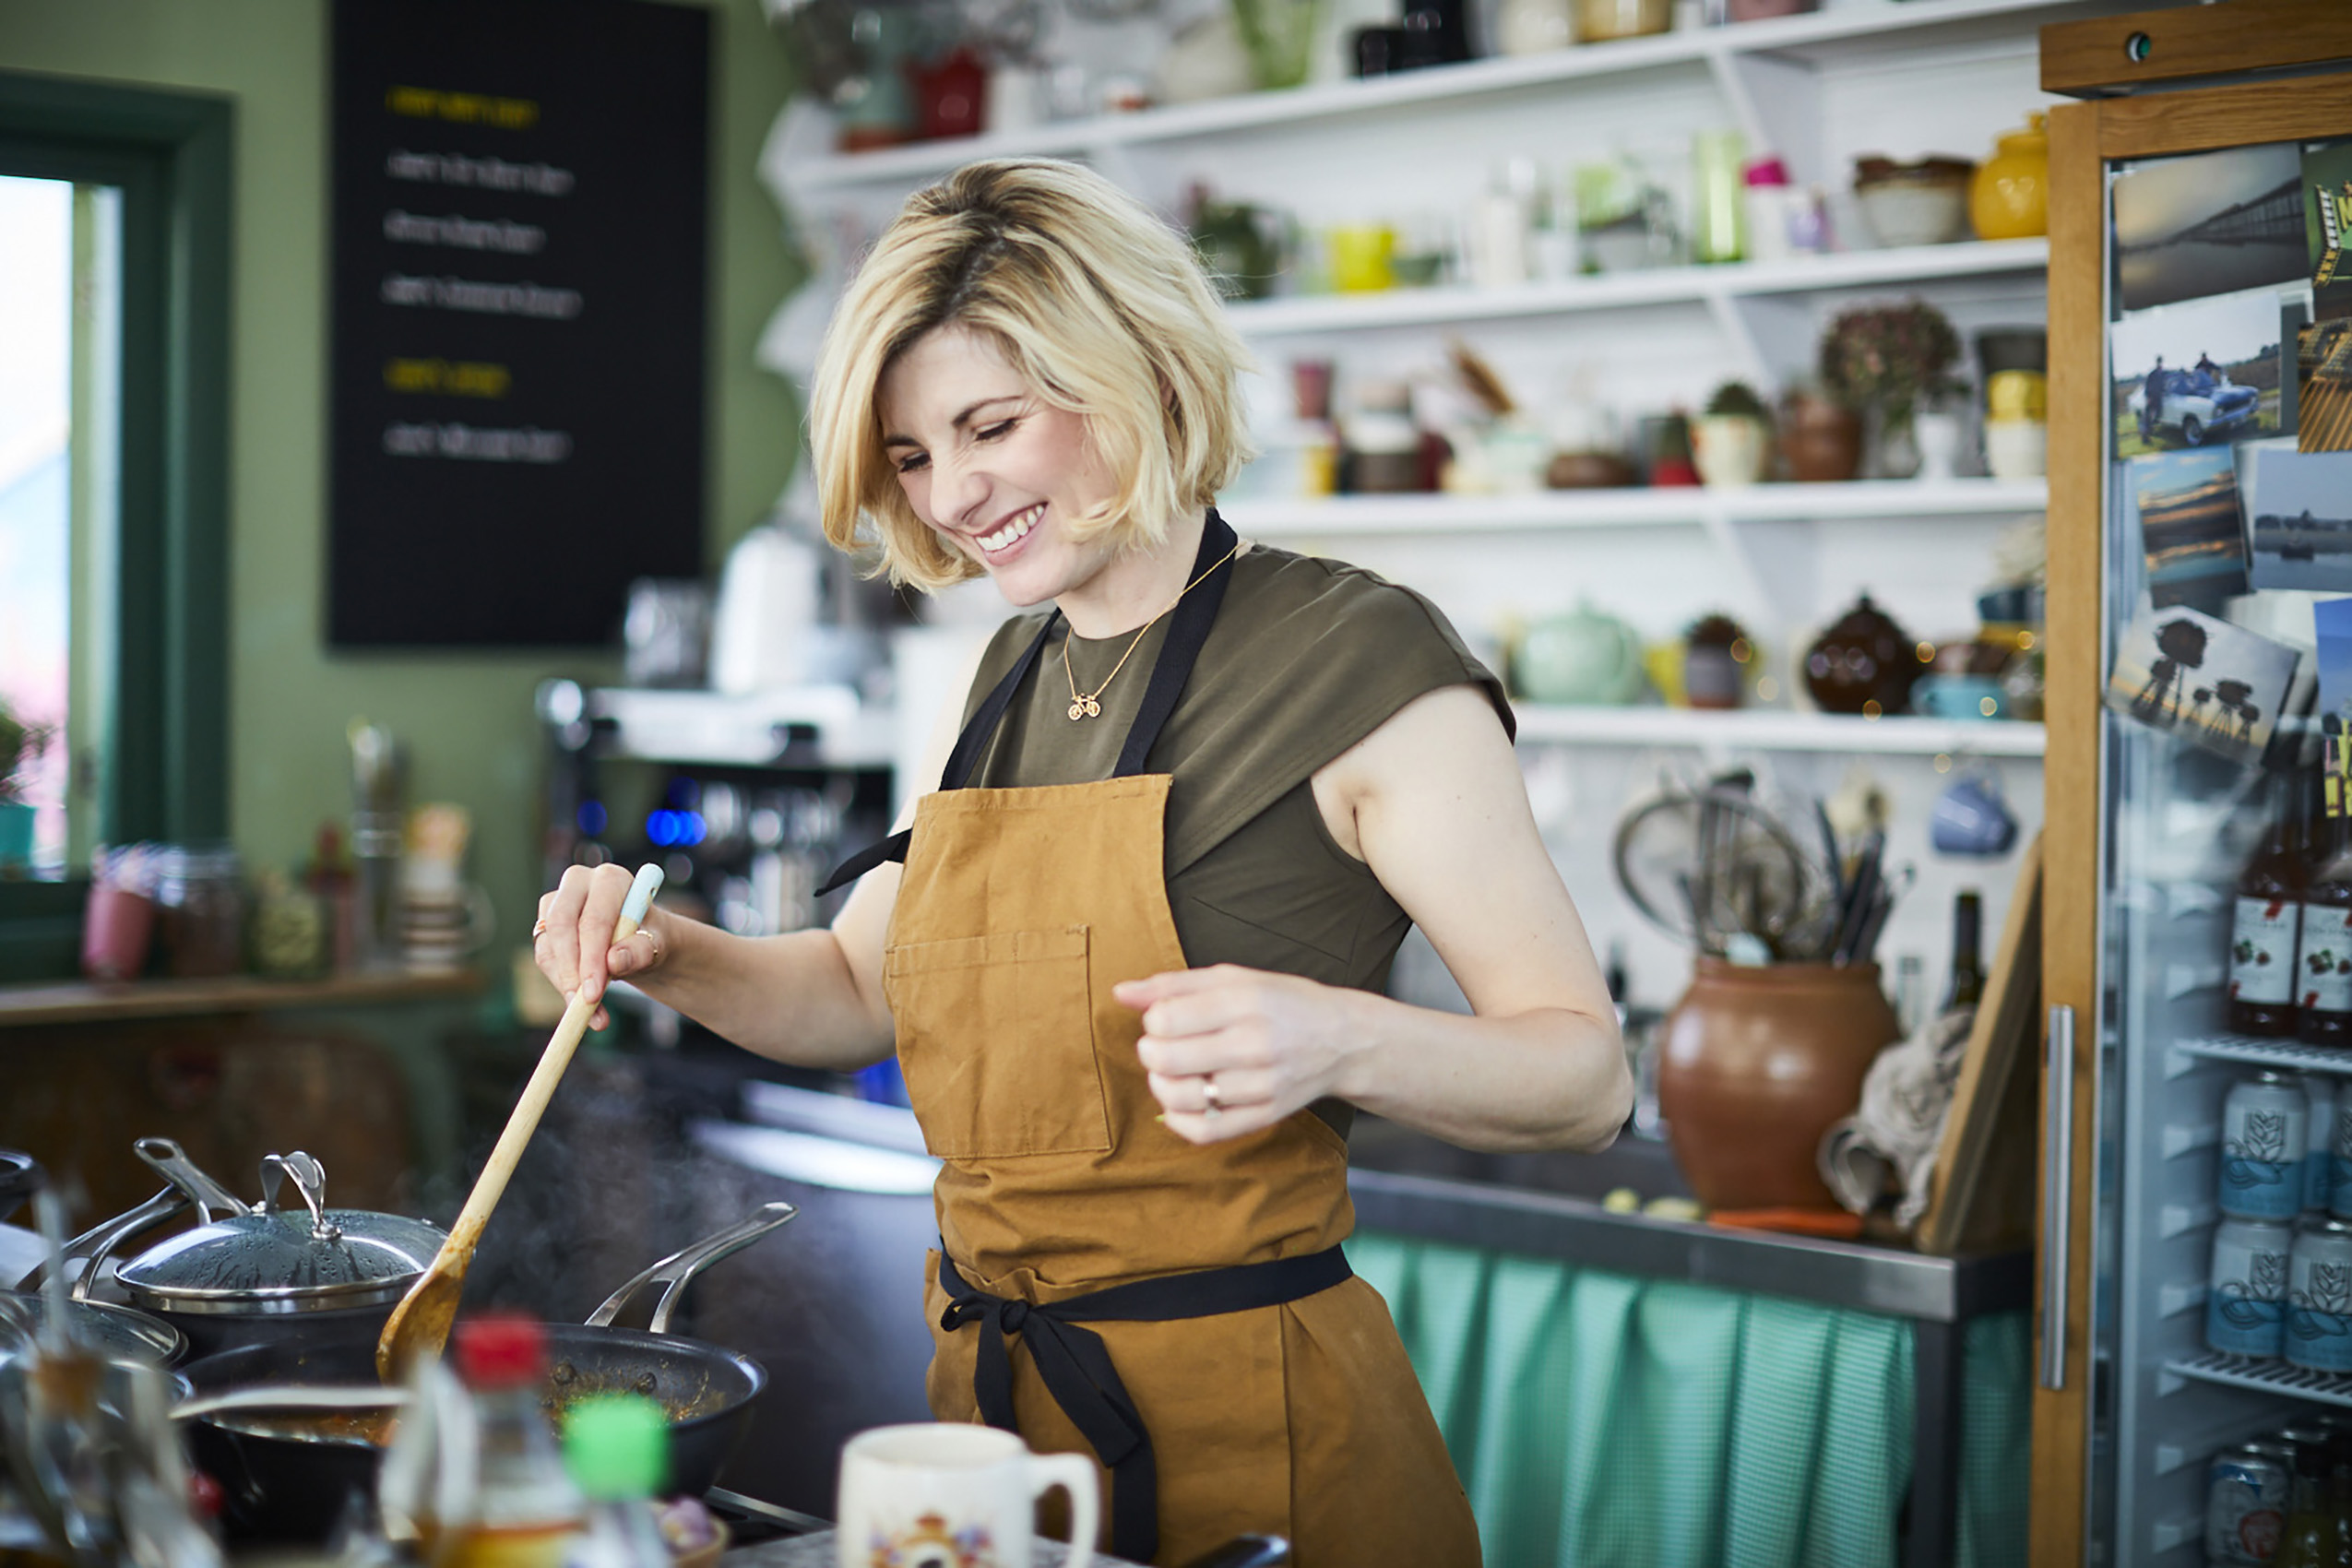 SteveRyan_Photographer_Portraits_People_FridaynightFeast_JamieOliver_JodieWhittaker_81